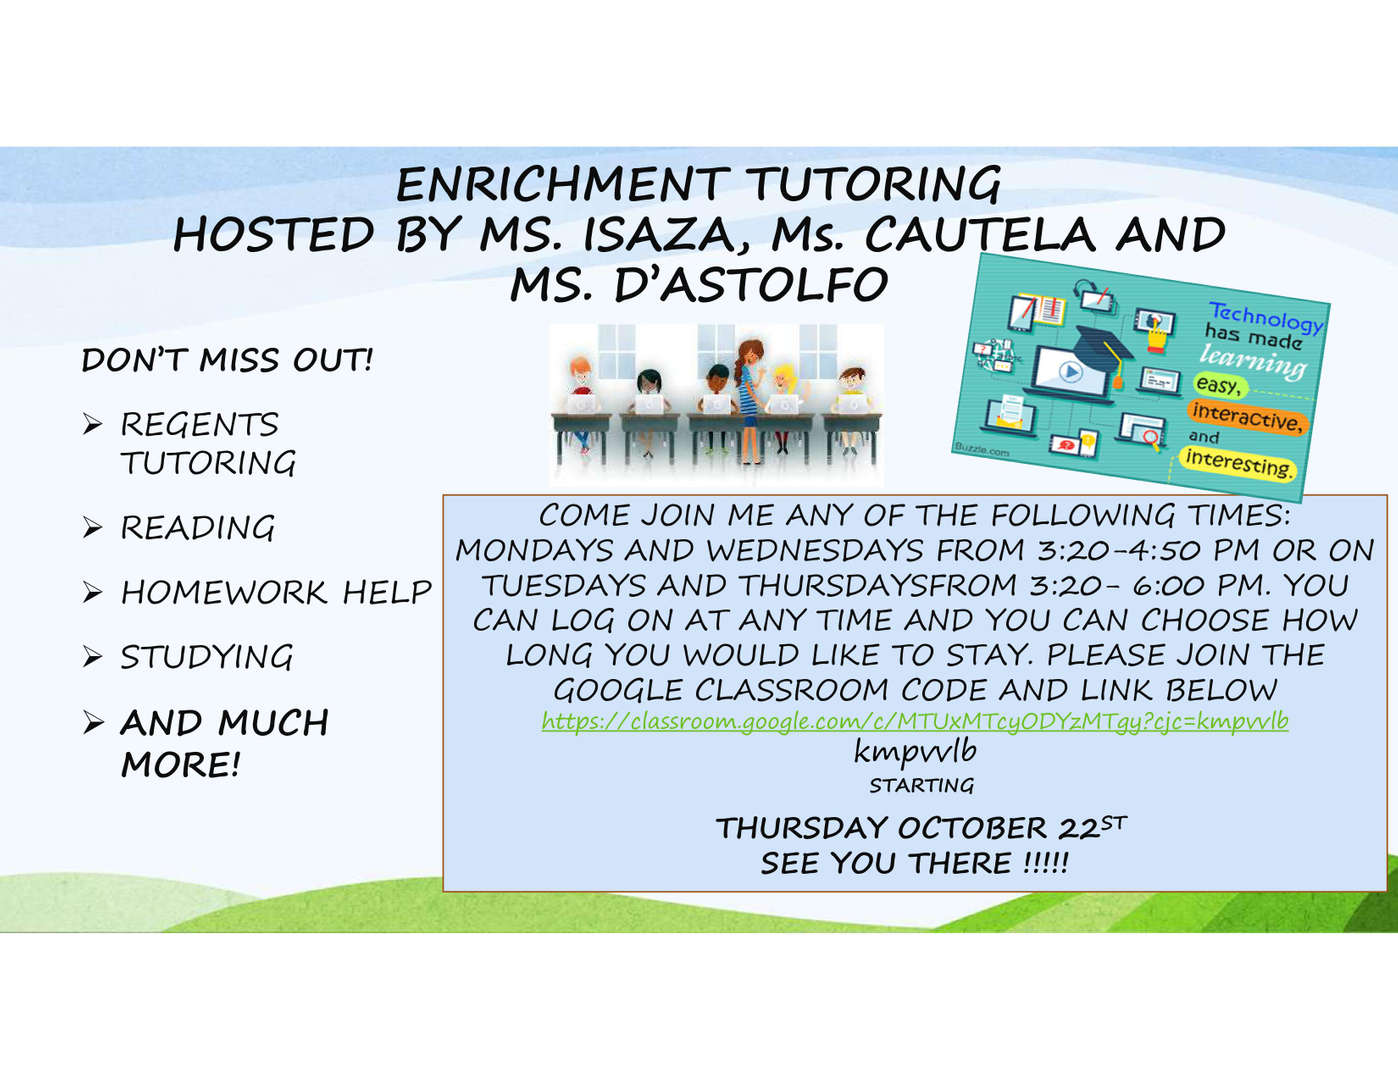 Enrichment tutoring offered by the ENL teachers